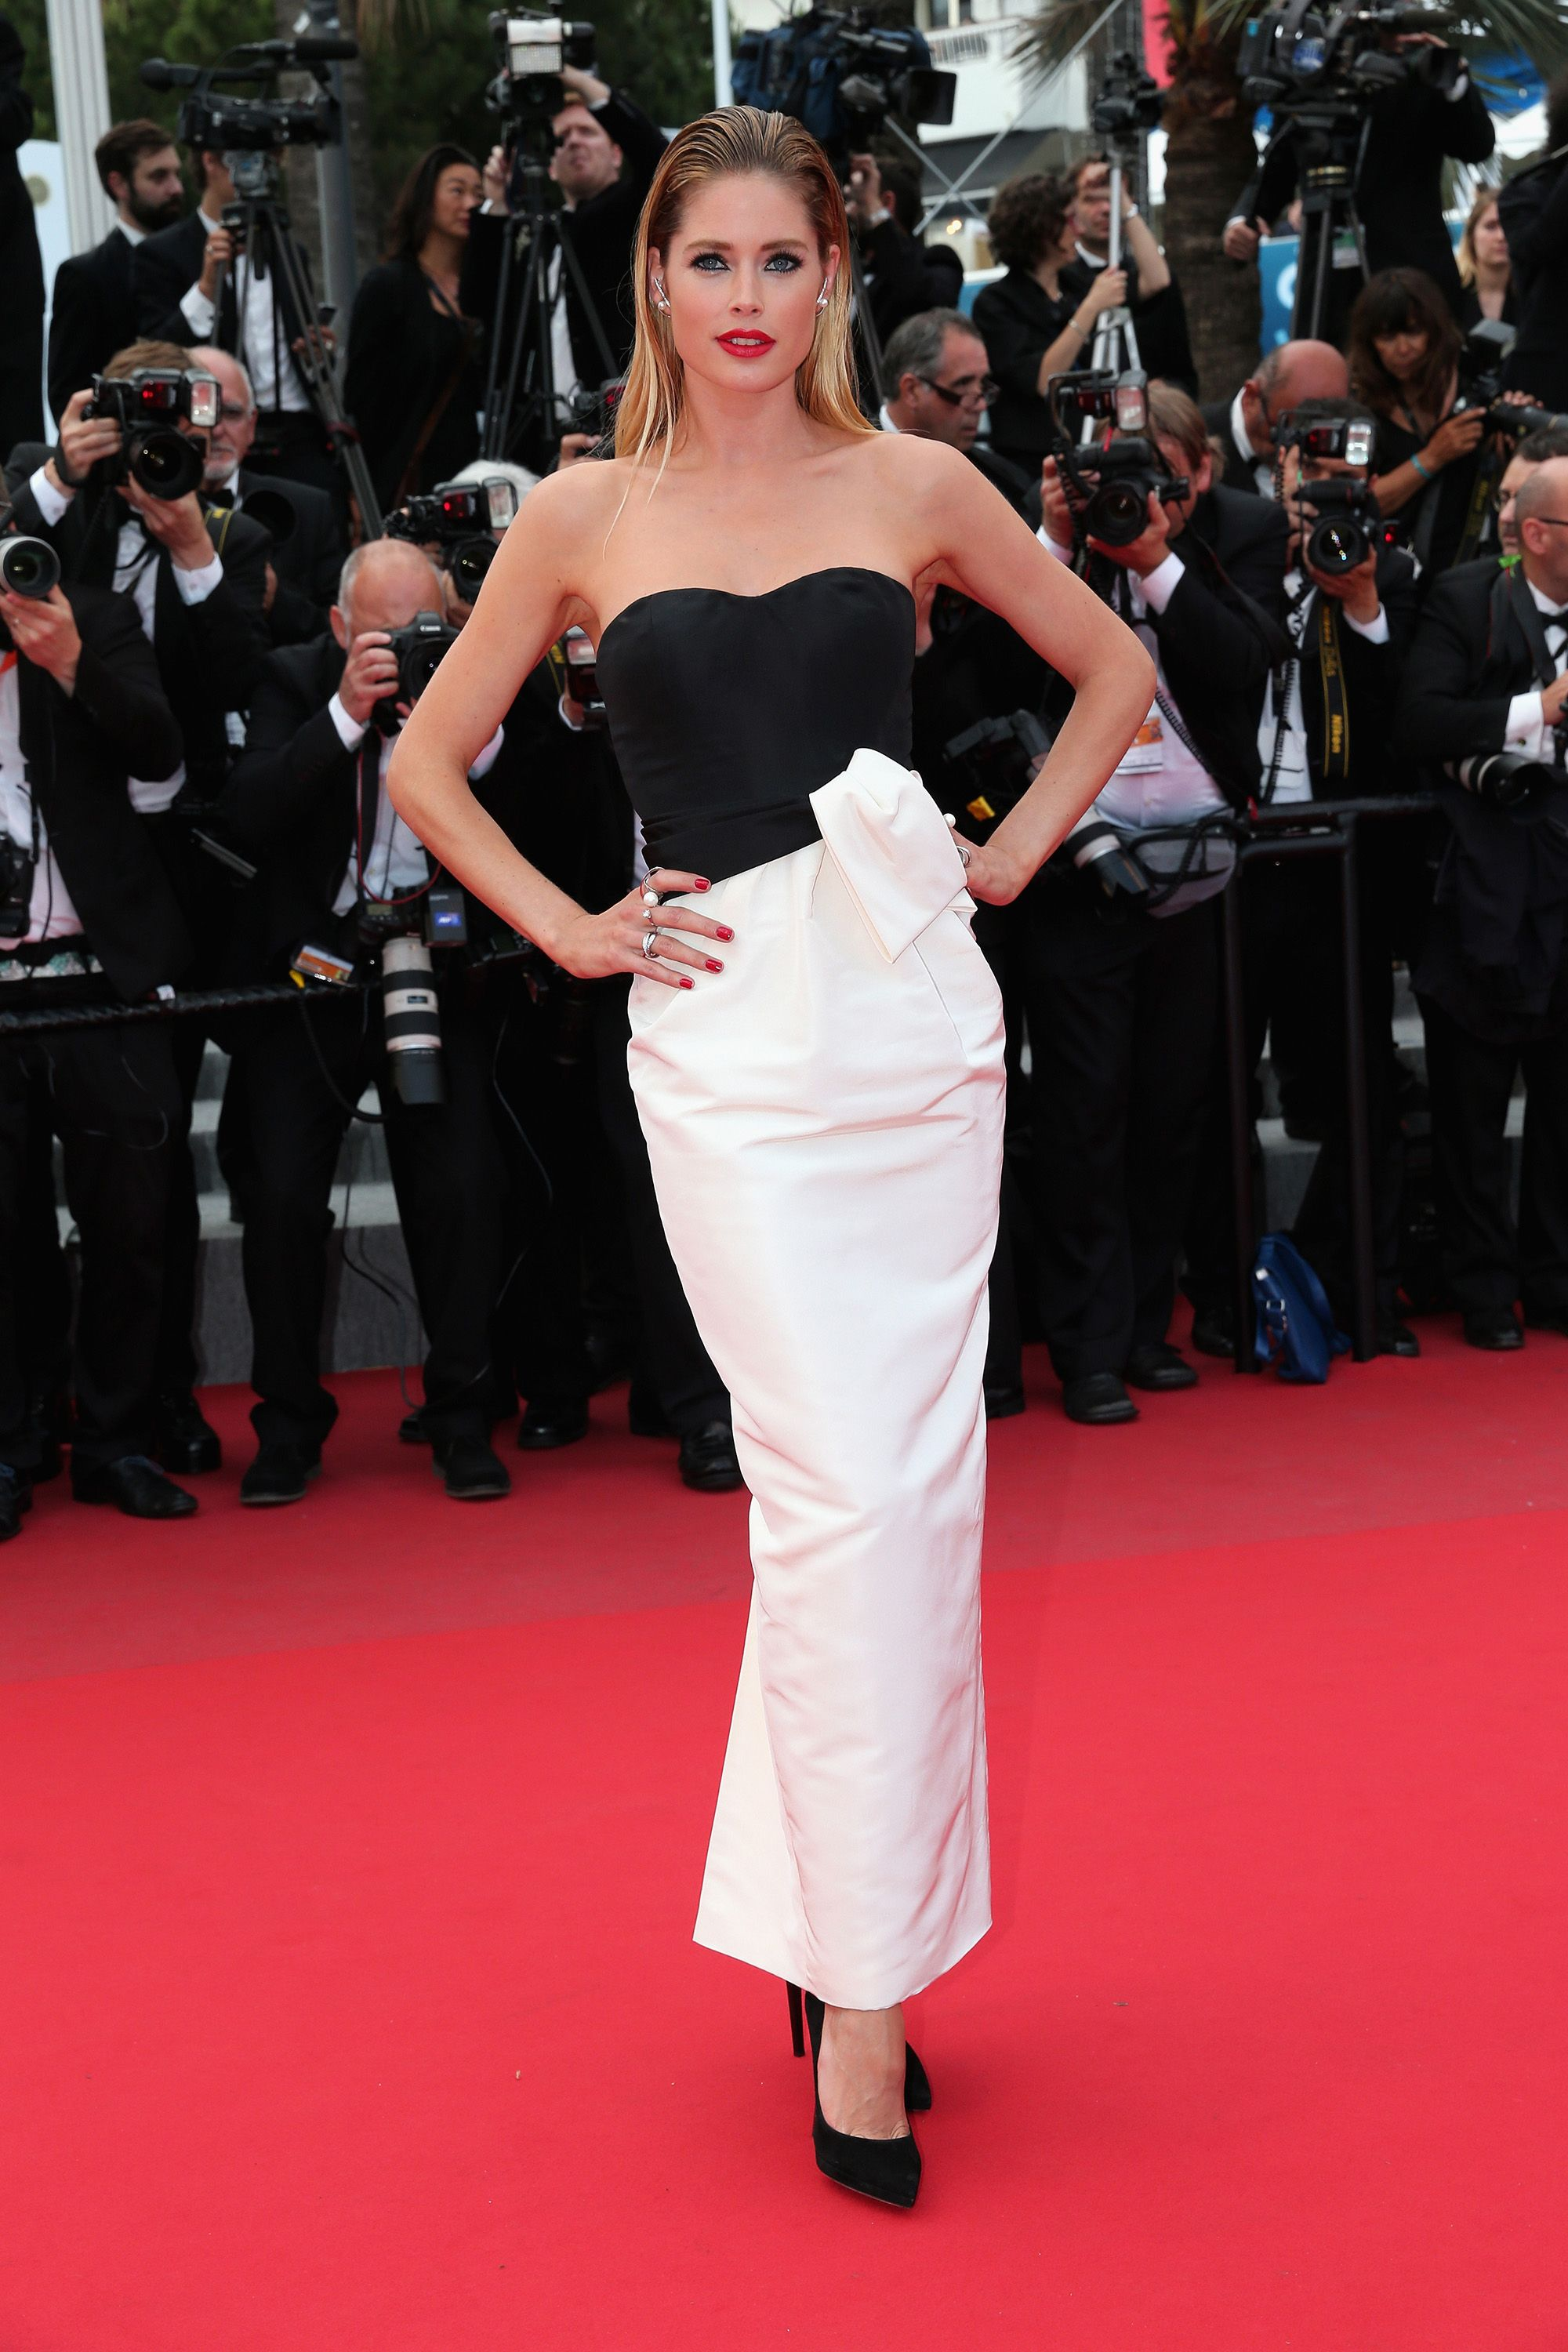 Roter Teppich Seitlich The Most Glamorous Style Spotted At The Cannes Film Festival